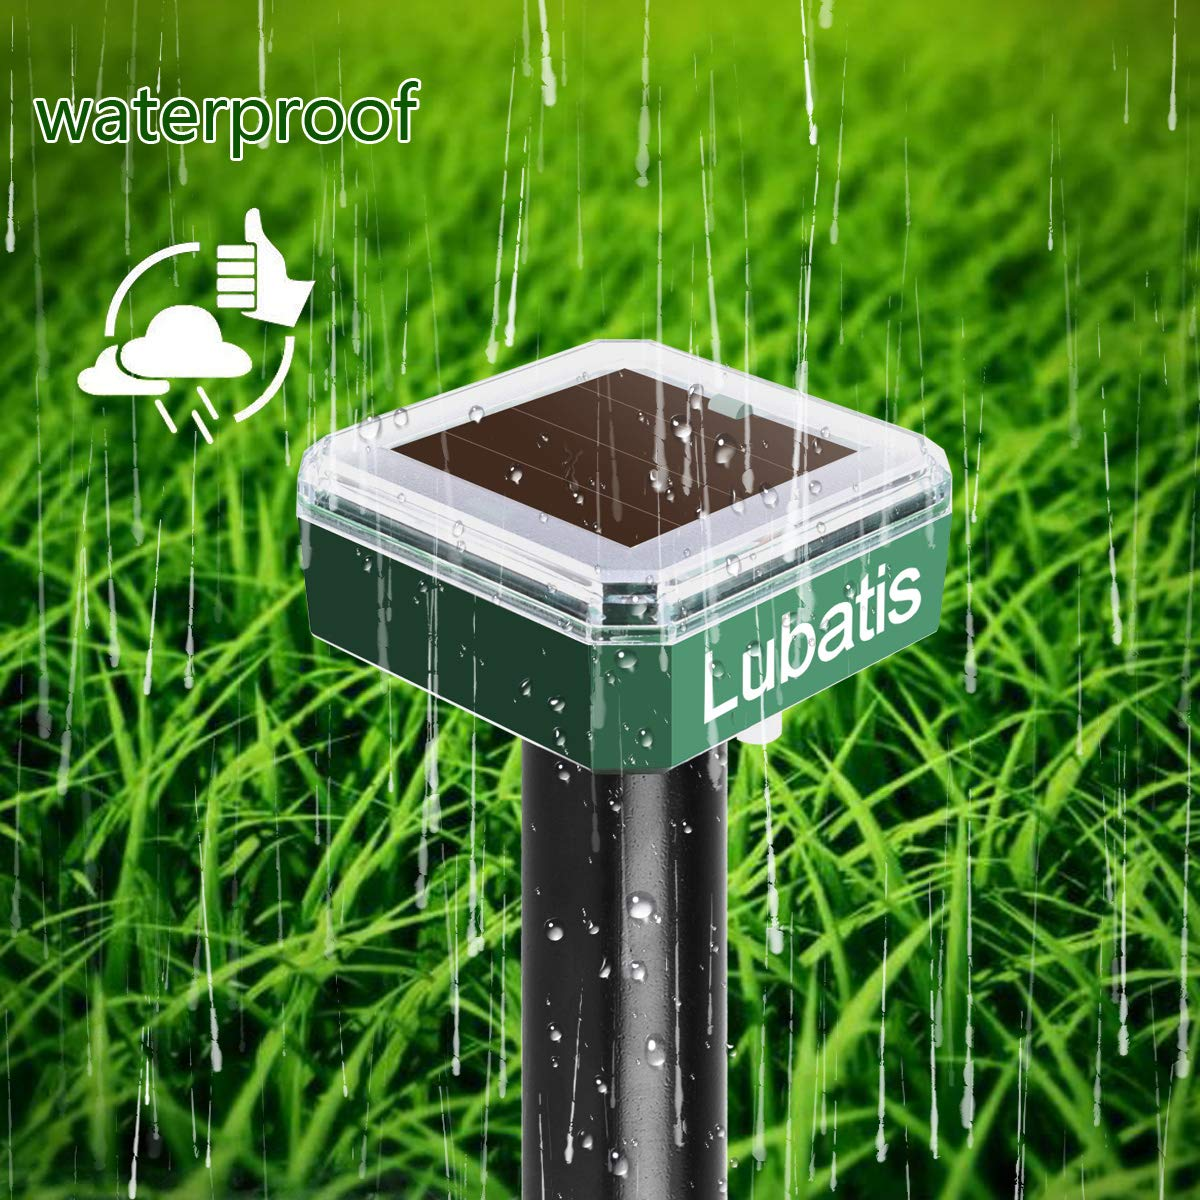 Lubatis 4 Pack Solar Mole Repellent Yard Stakes Sonic Mole Repeller Gopher and Vole Chaser Spike Deterrent Mole Control to Get Rid of Moles, Voles and Gophers